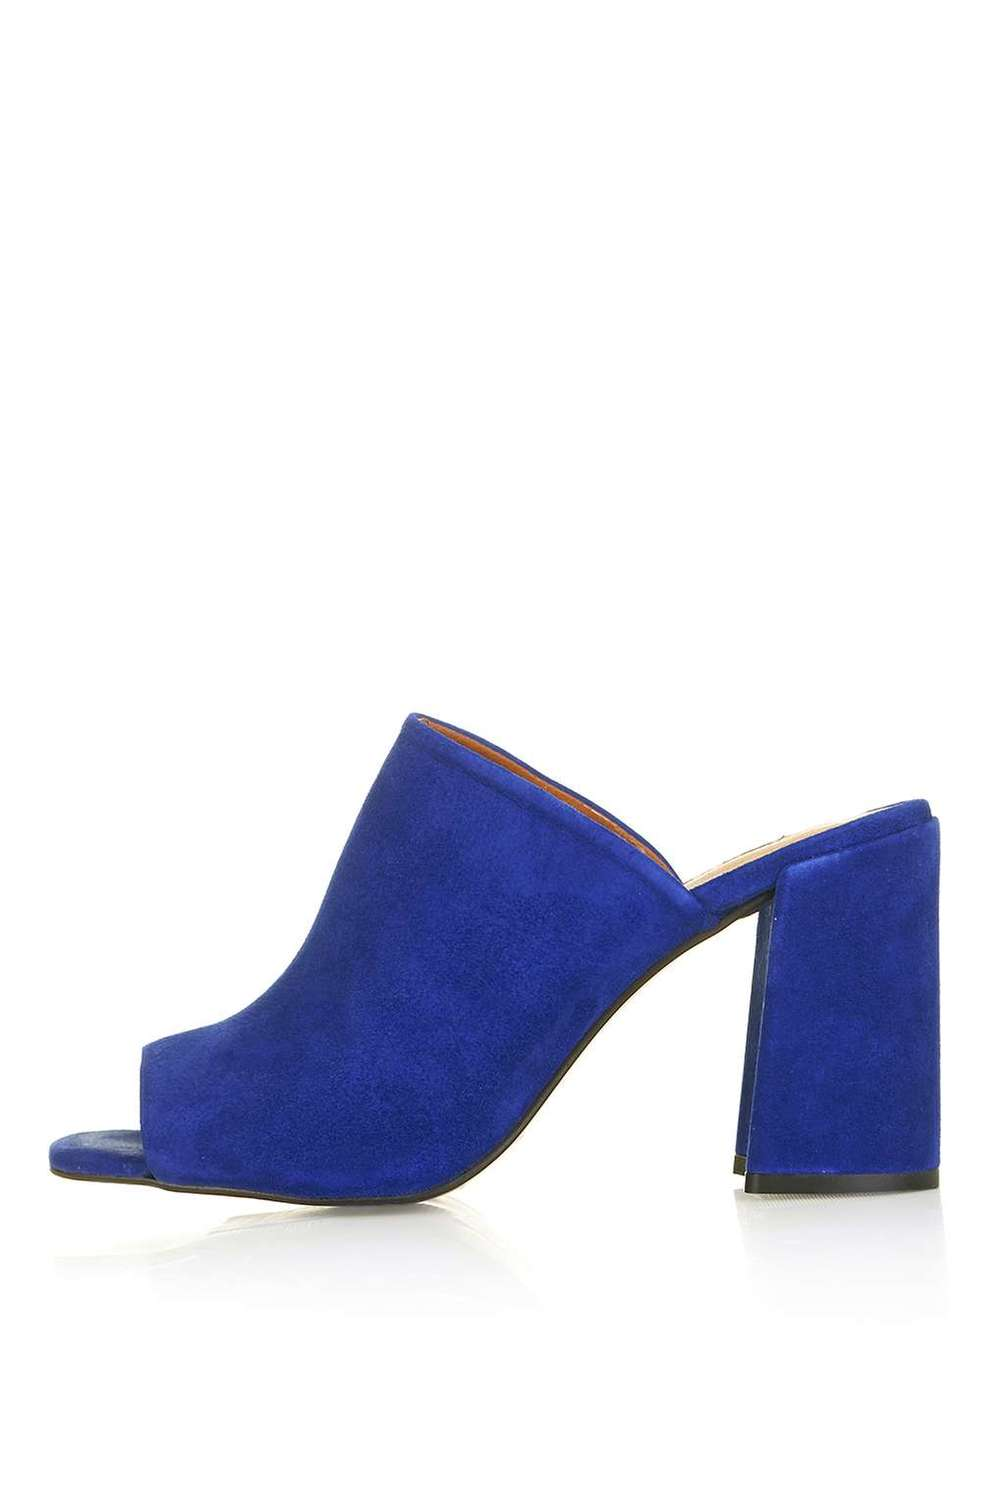 RULER Flared Heel Peep Toe Mules. Available in multiple colors. Topshop. $110.